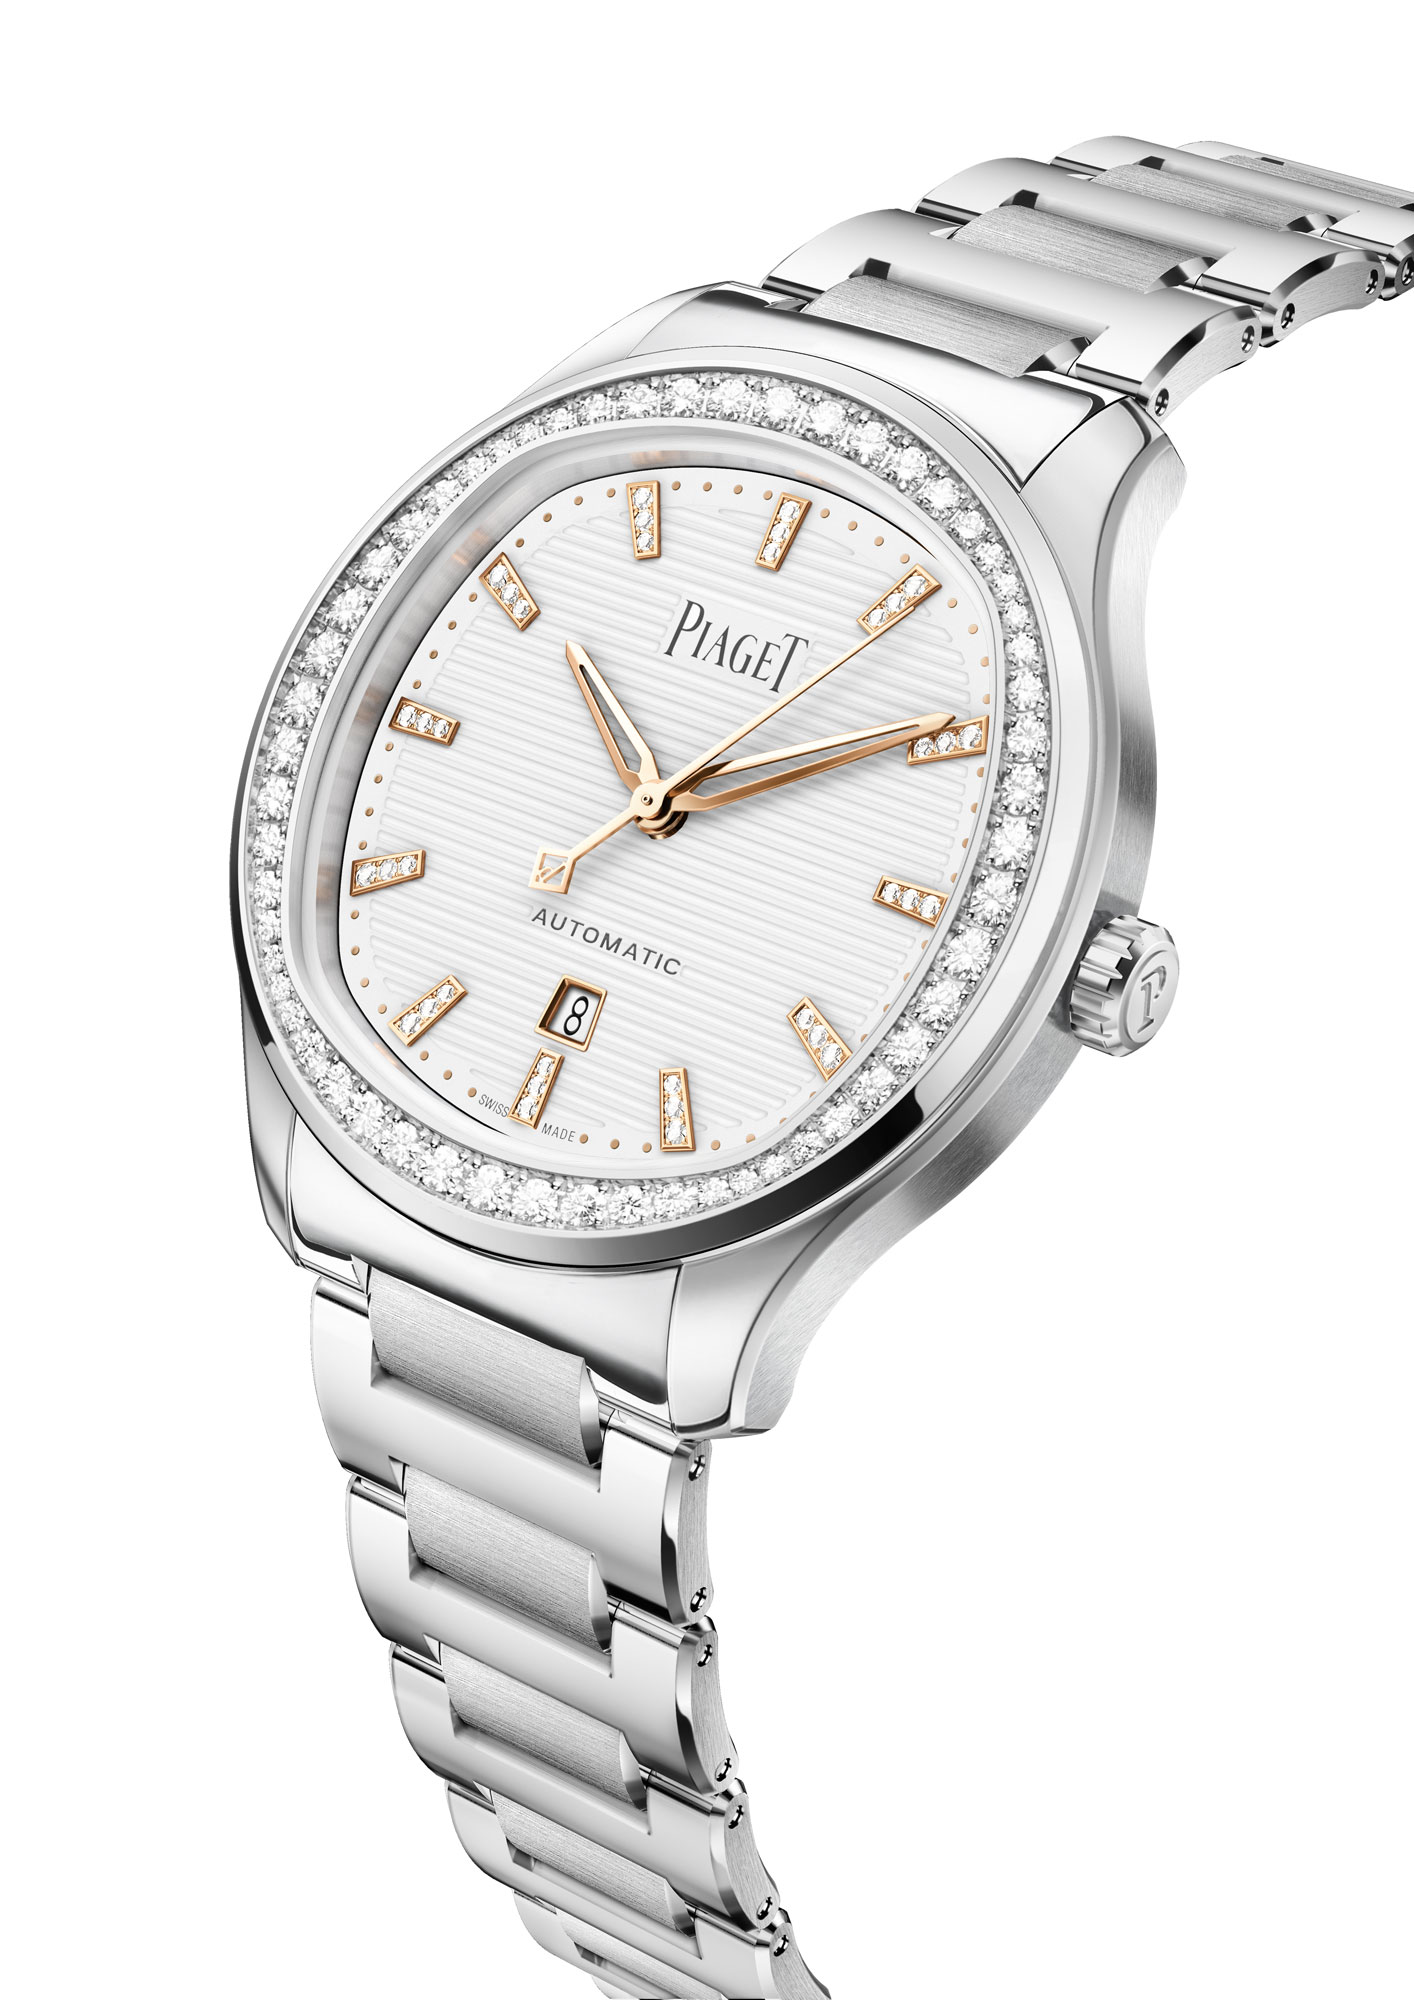 Piaget Polo 36mm Steel, G0A46019, side